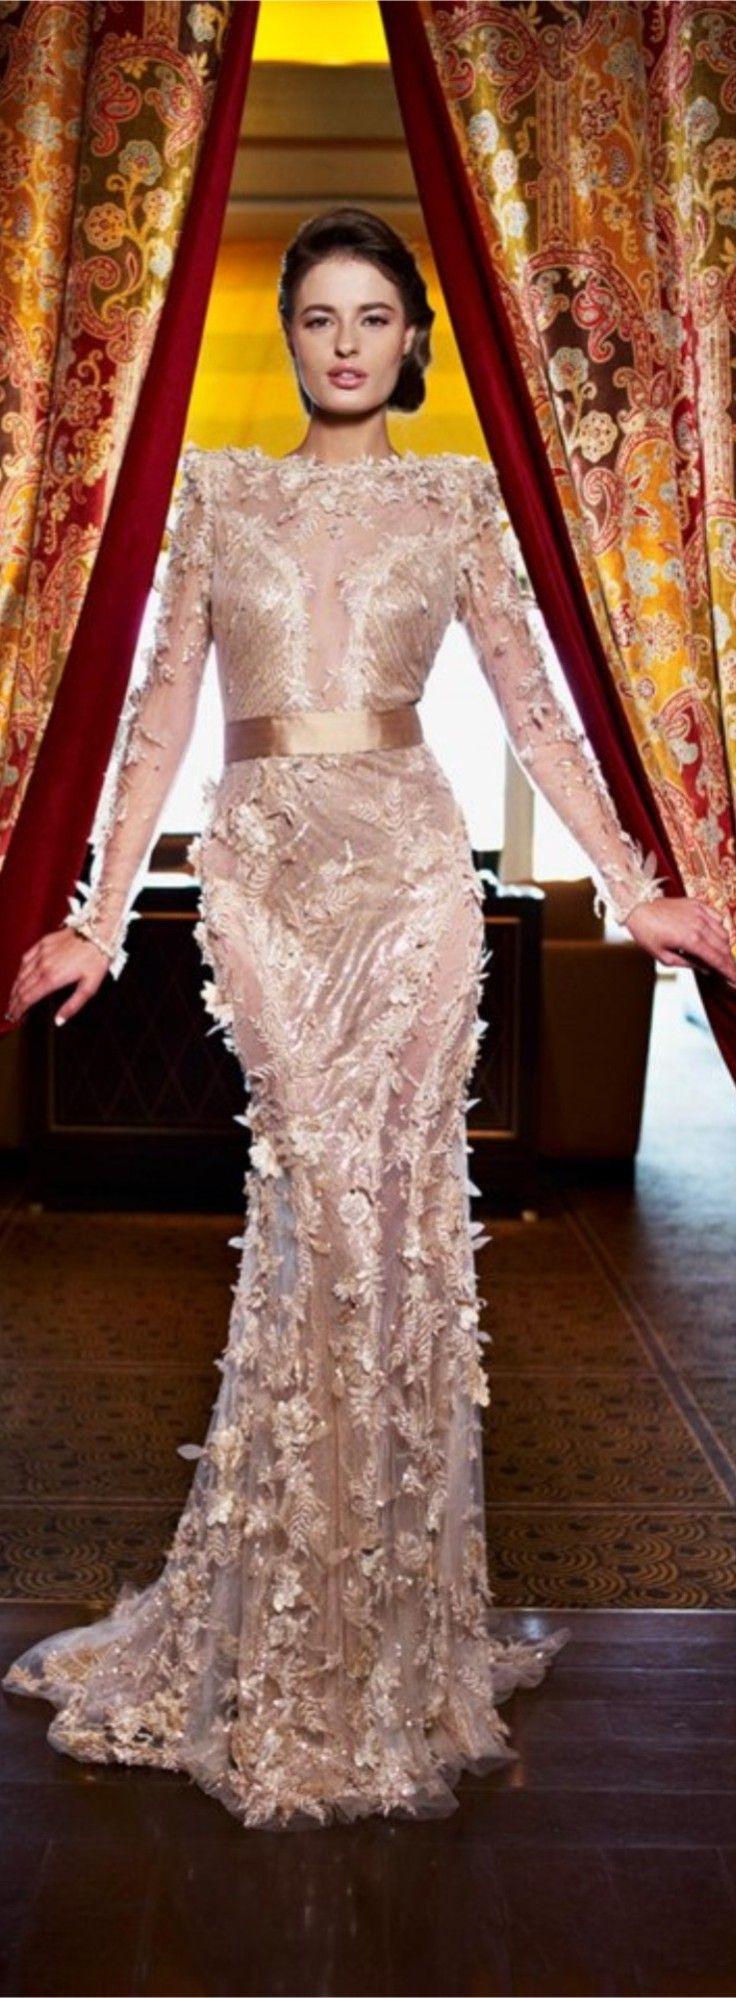 Ziad nakad haute couture gown dresses pinterest for Buy haute couture